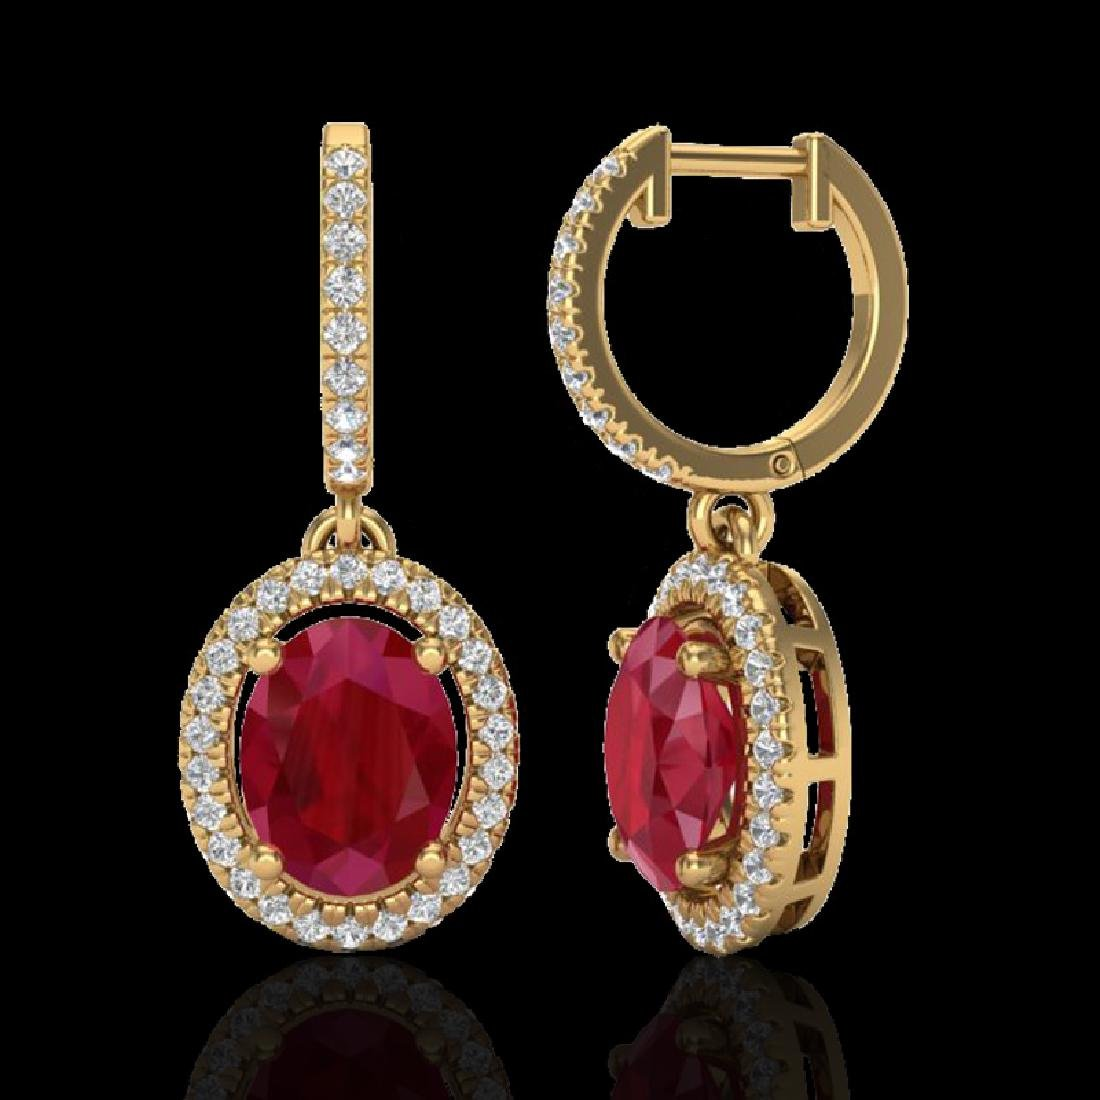 4.25 CTW Ruby & Micro Pave VS/SI Diamond Earrings - 2